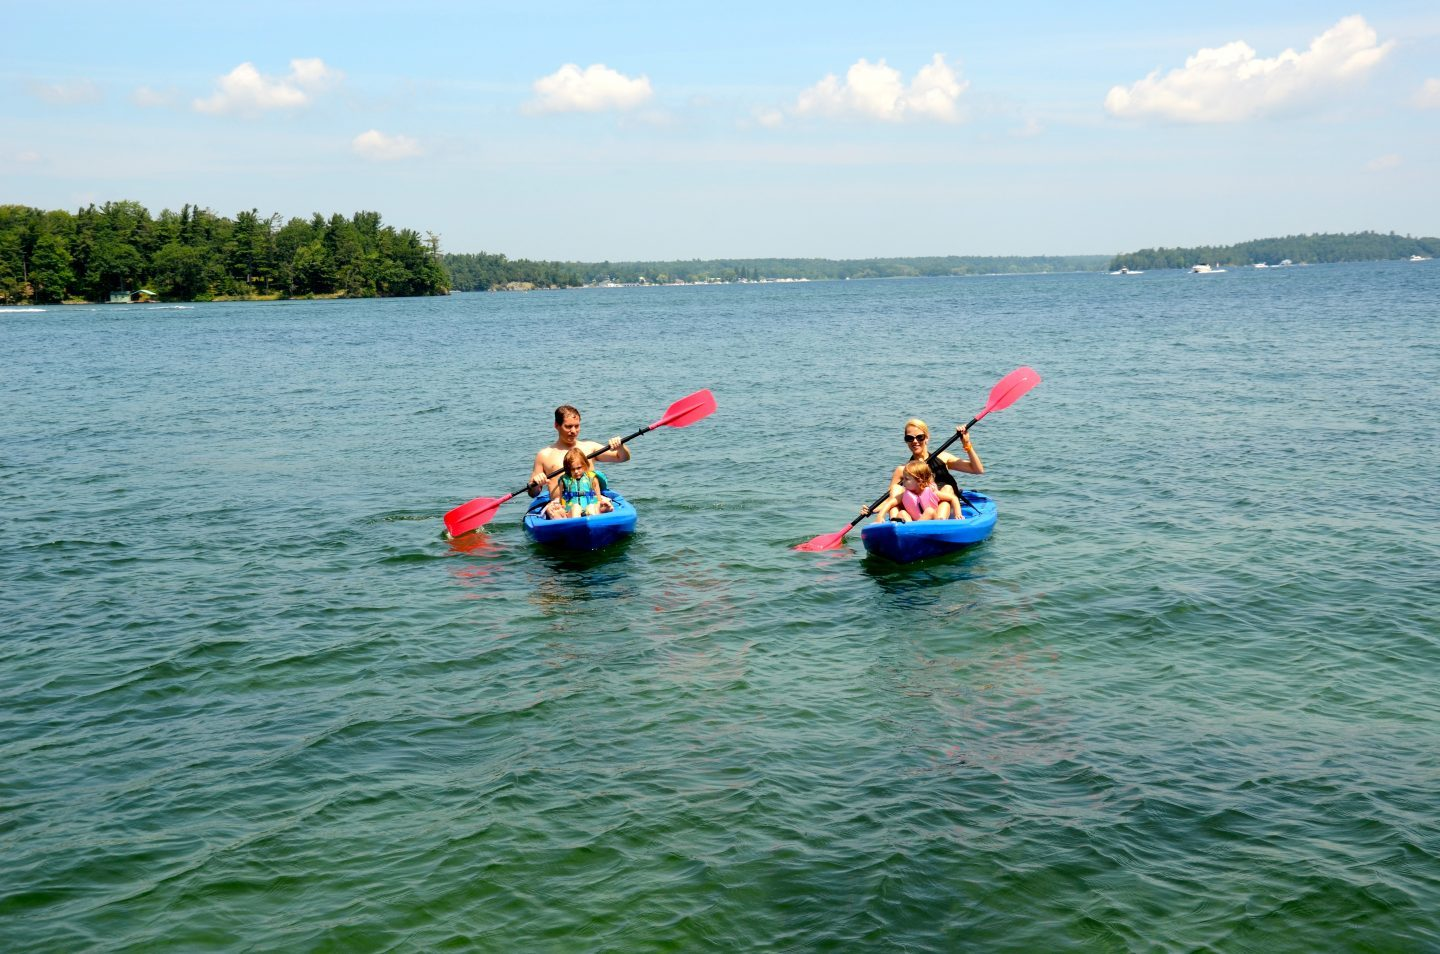 Kayaking in the Thousand Islands